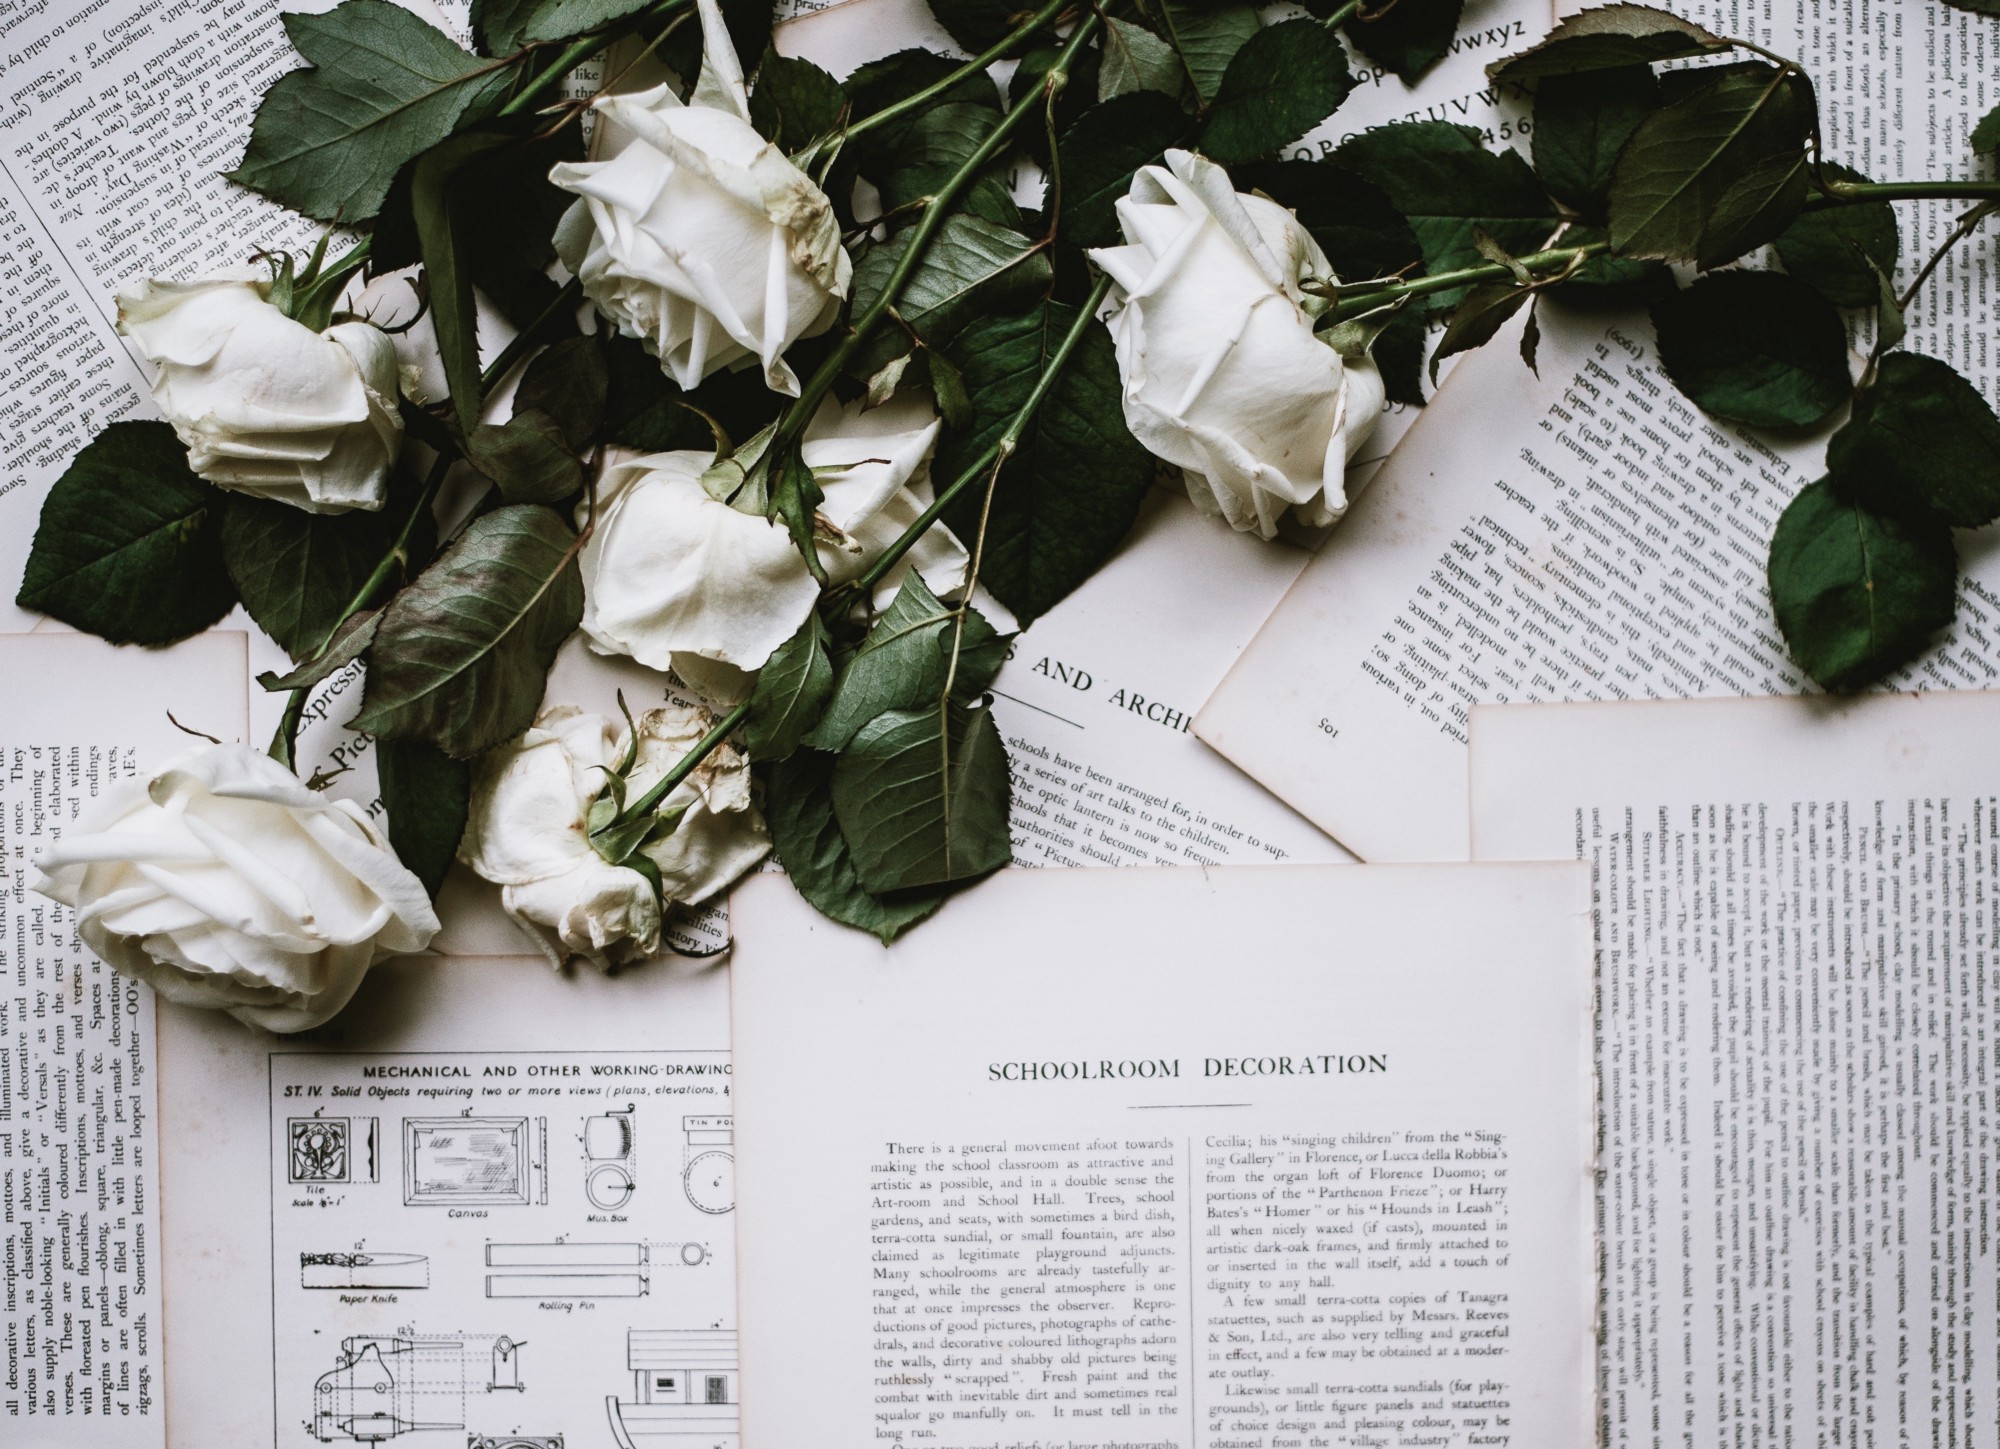 How To Stop Worrying And Love The Process Of Writing